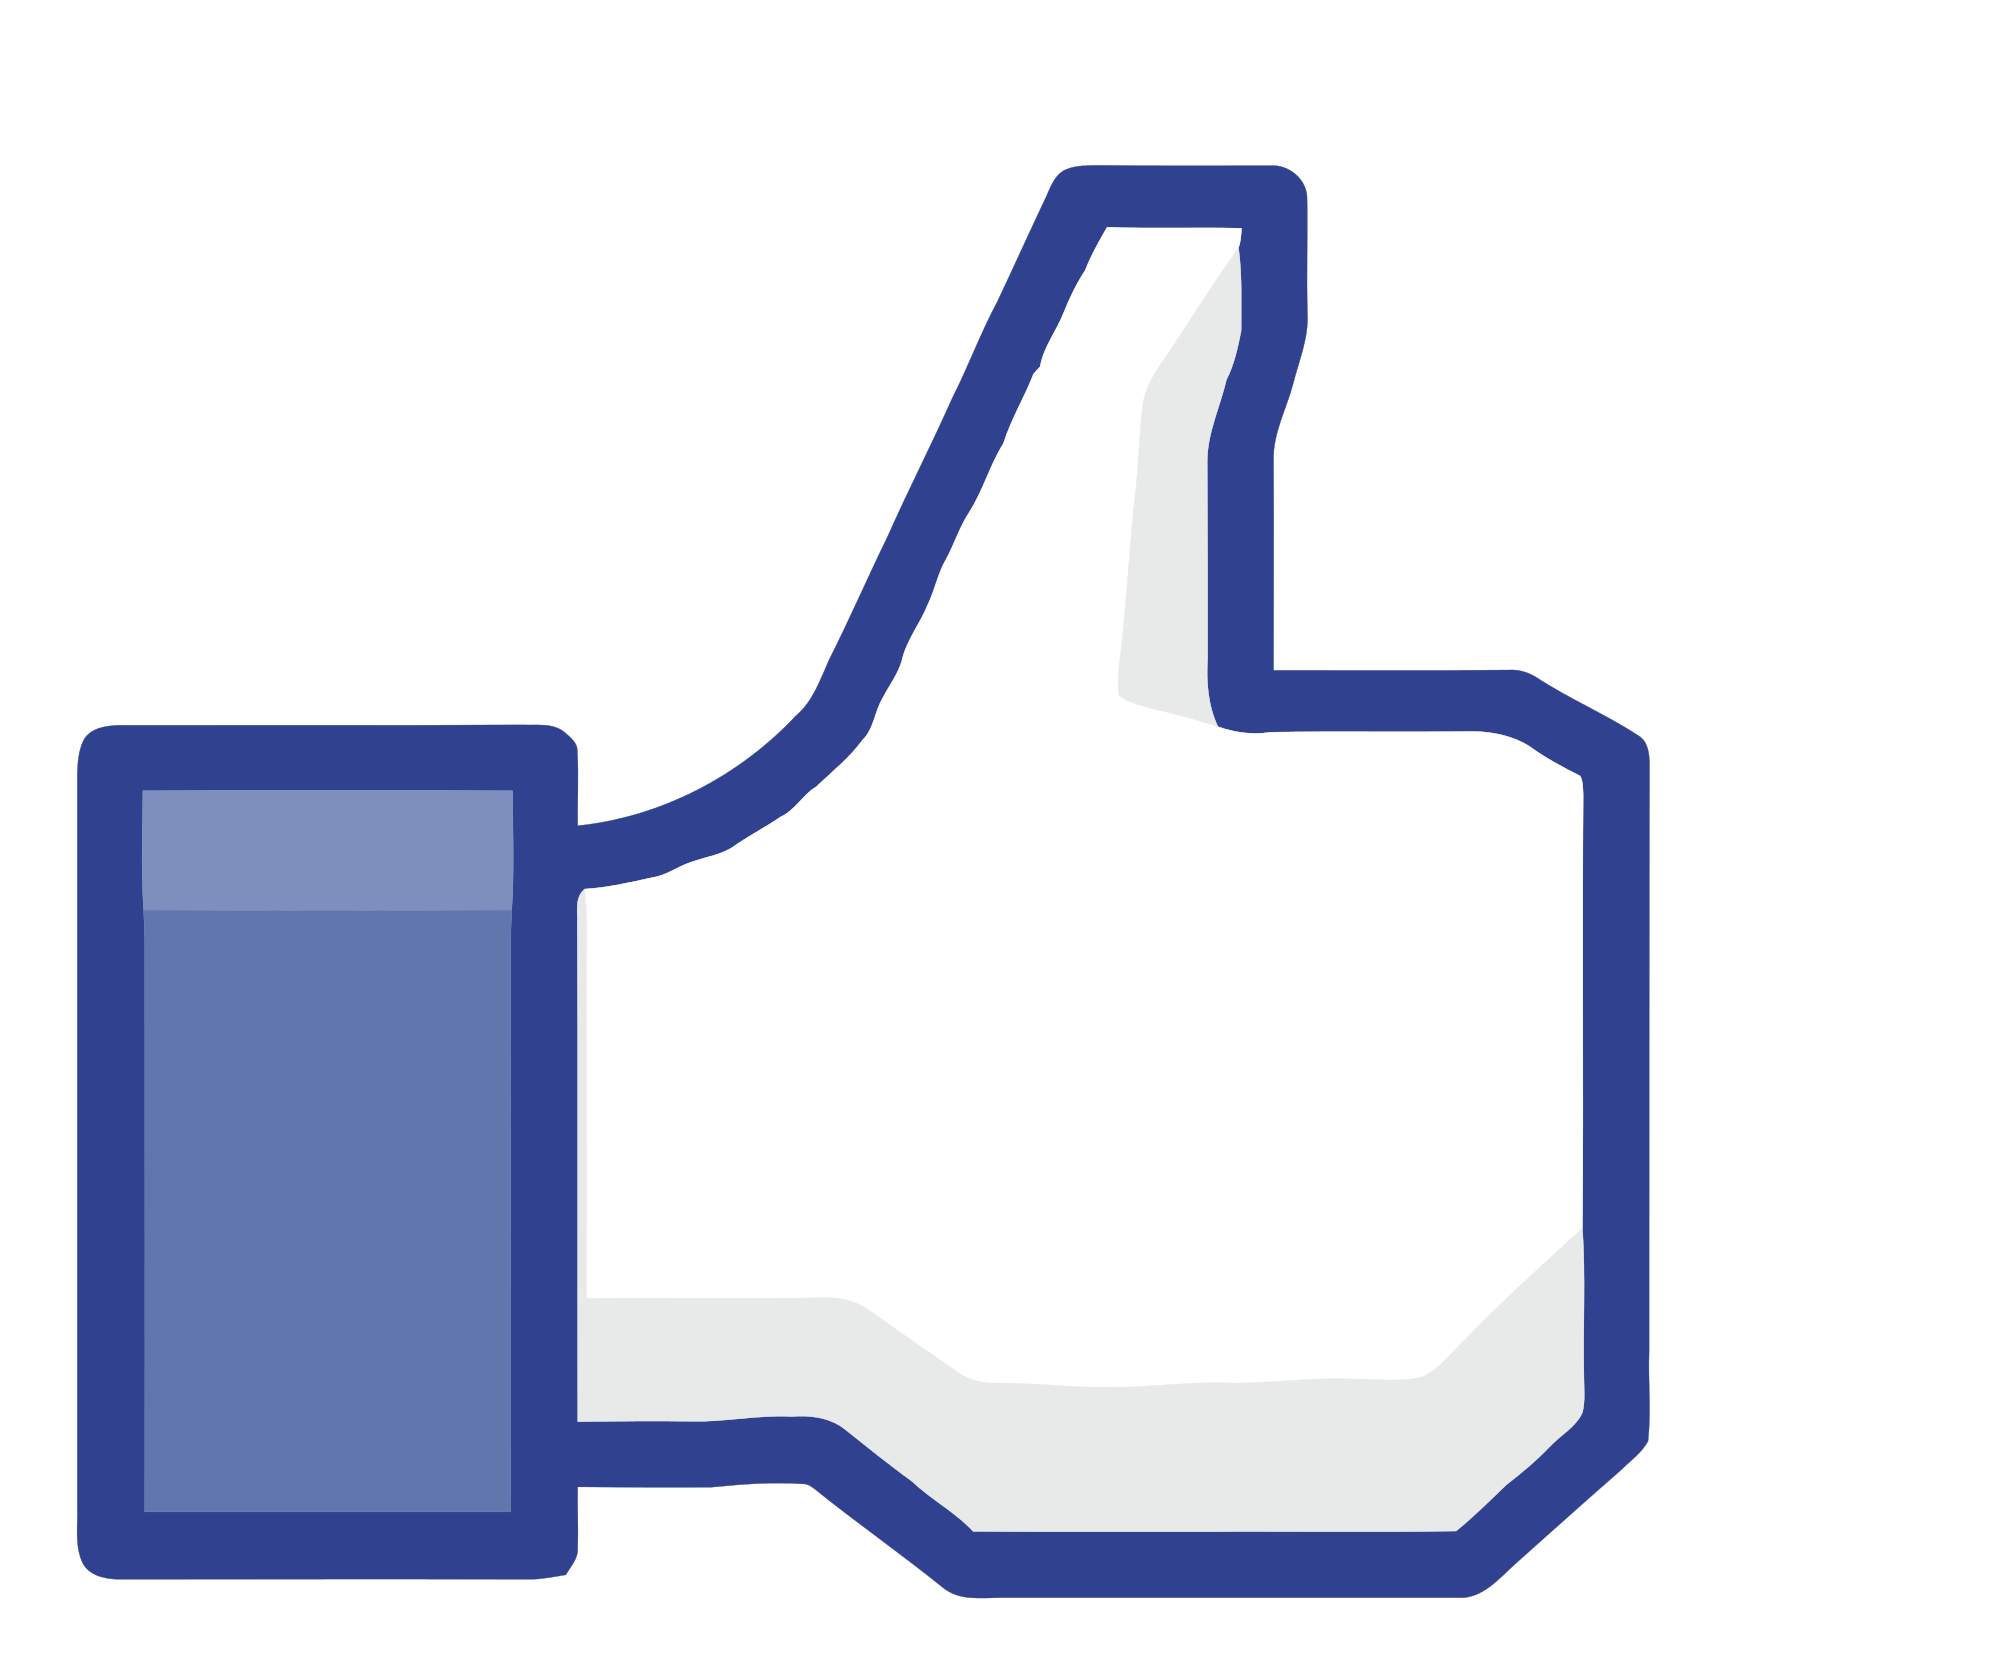 facebook_logo_thumbs_up_like_transparent_svg-svg